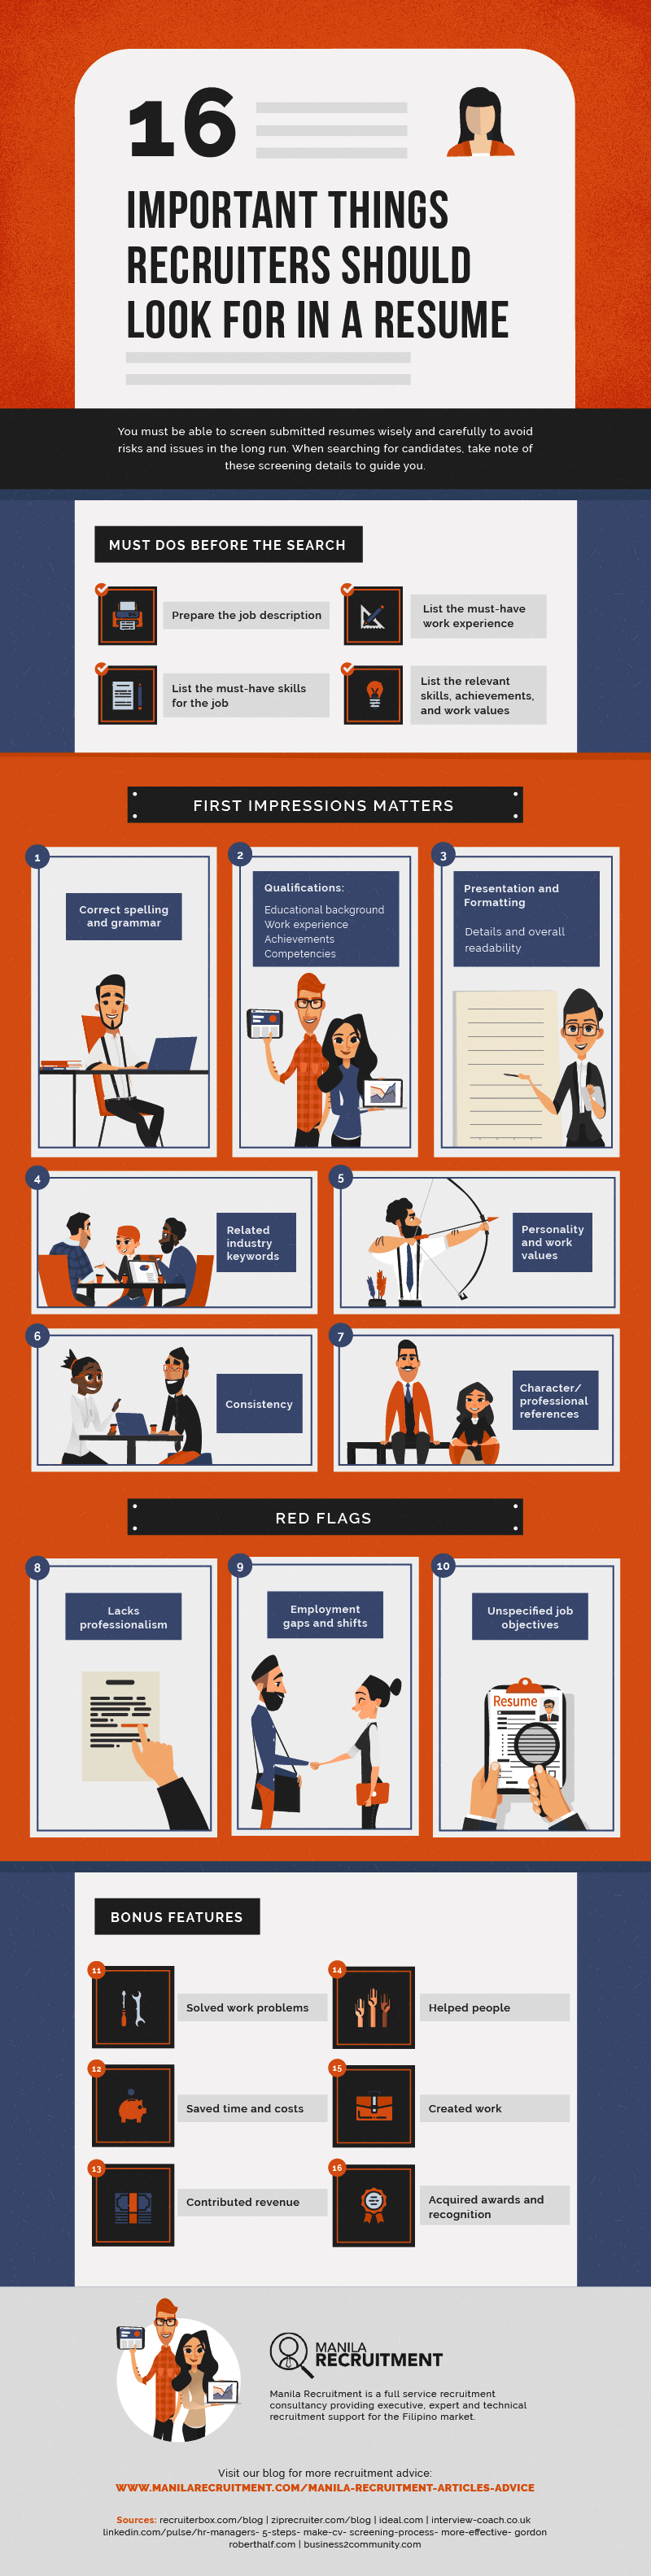 16 Important Things Recruiters Should Look for in a Resume [Infographic]